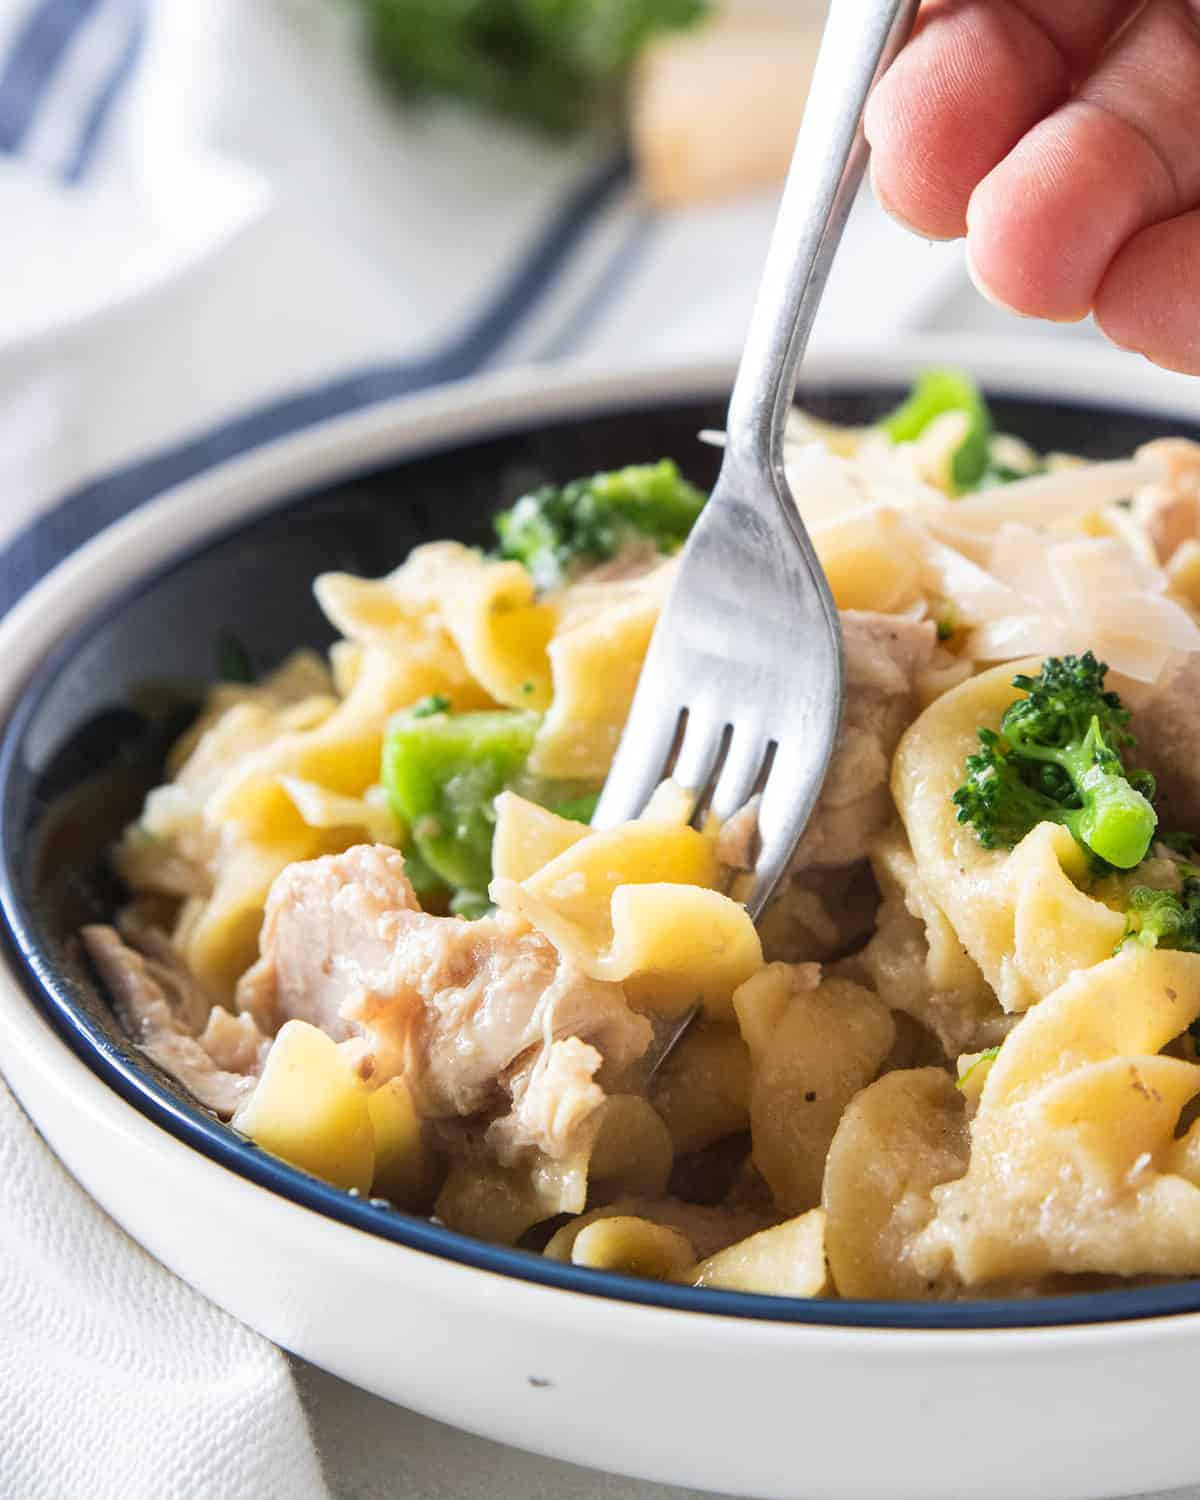 Chicken casserole in a bowl with a fork.